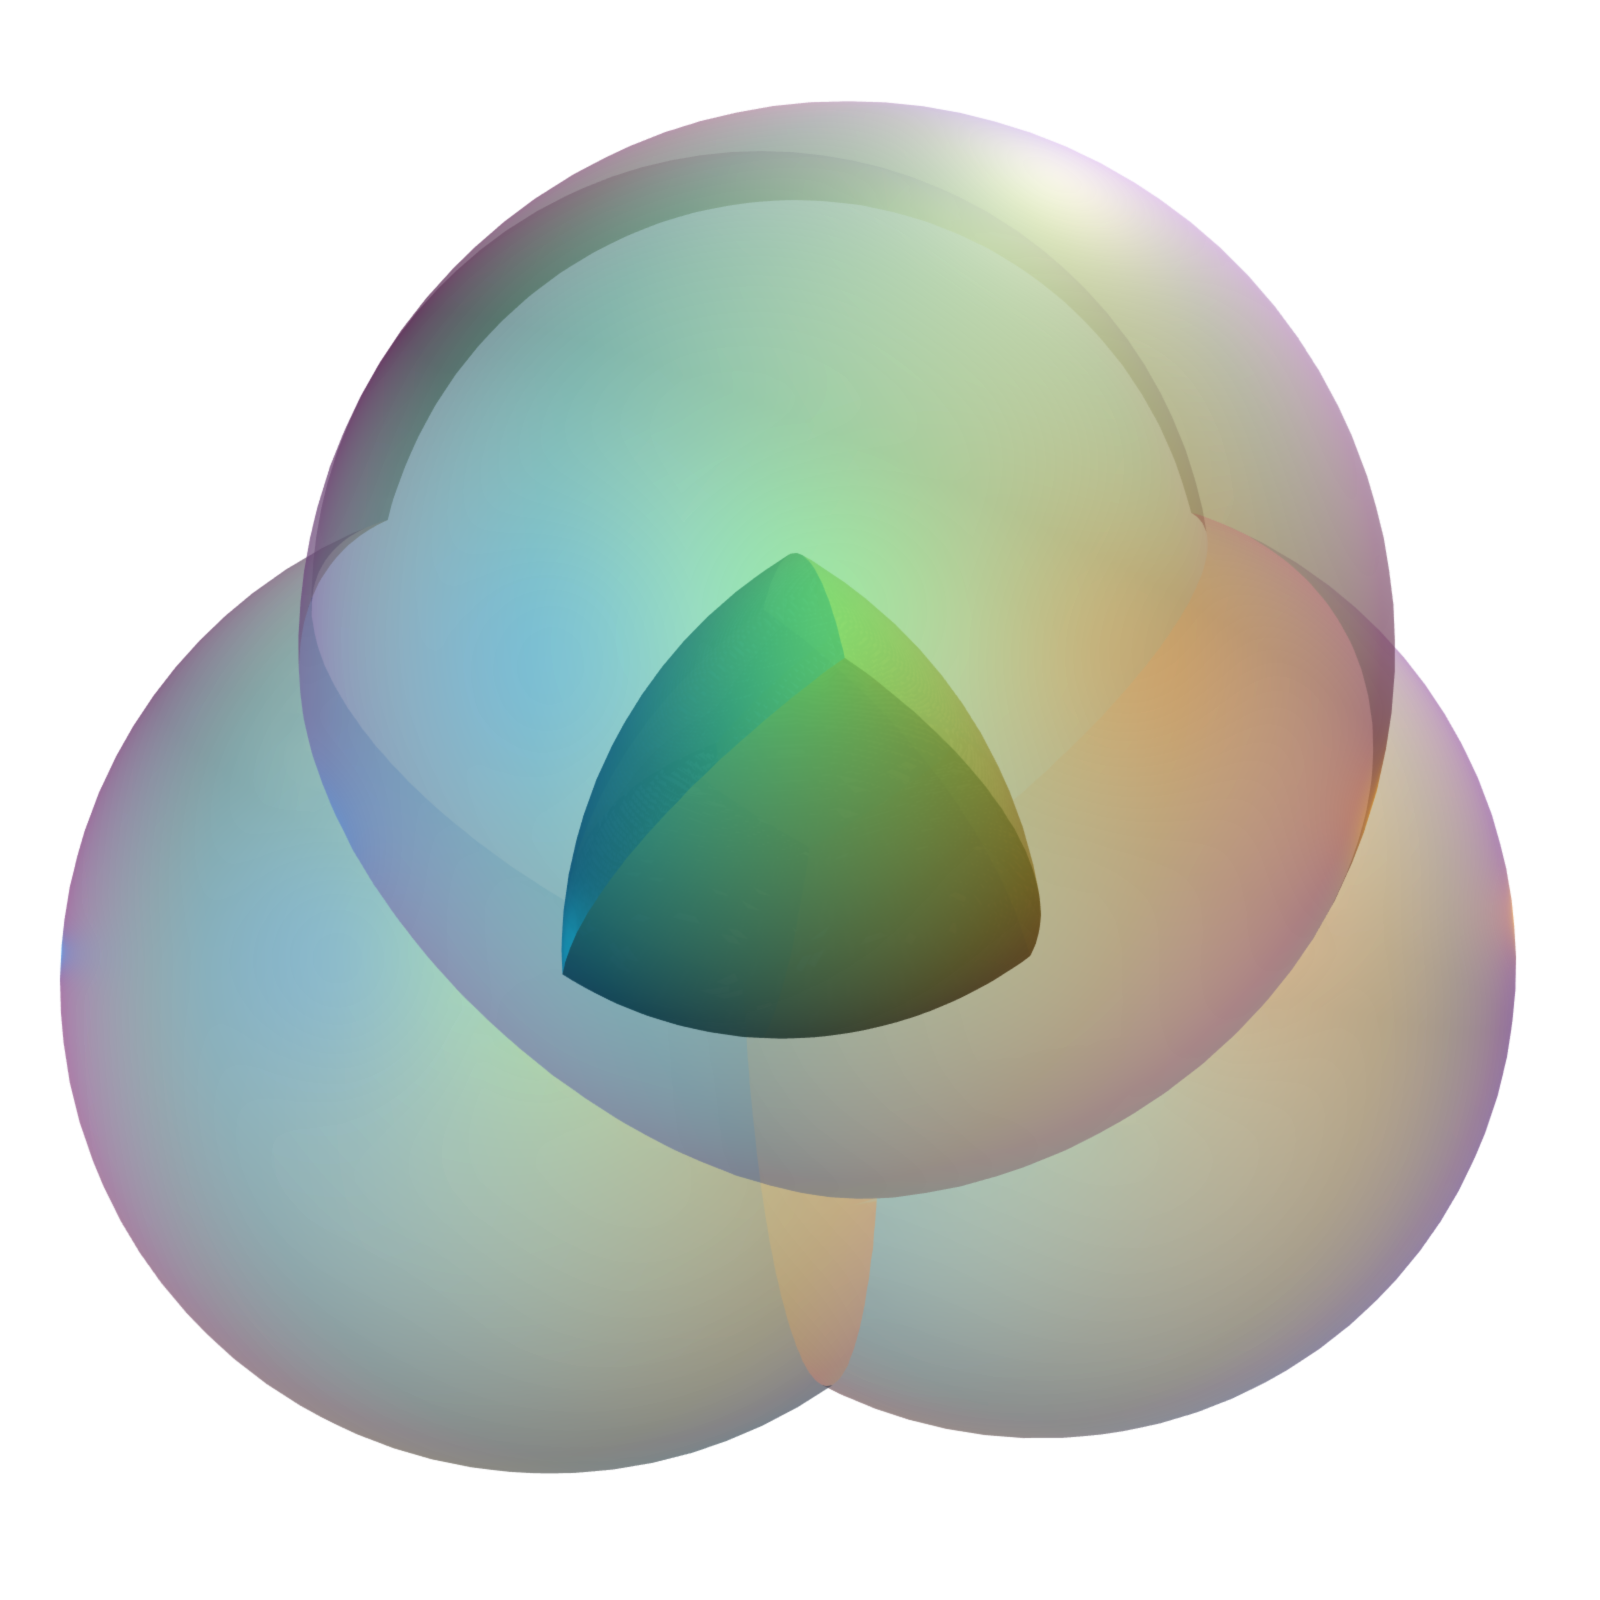 The 3 Dimensional Analogue Of The Reuleaux Triangle Is The Intersection Of  The Interiors Of 4 Spherical Balls Of Radius R, Each Of Which Goes Through  The